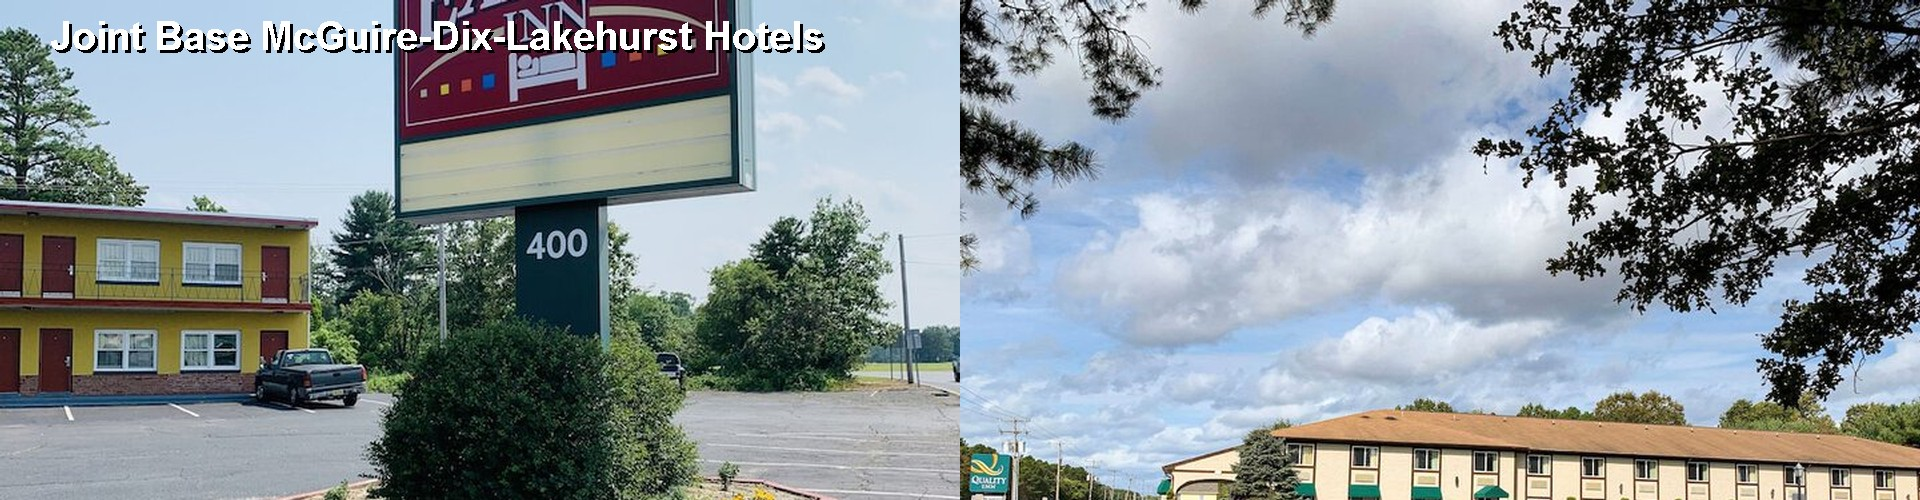 Hotels Near Joint Base McGuire Dix Lakehurst (NJ)